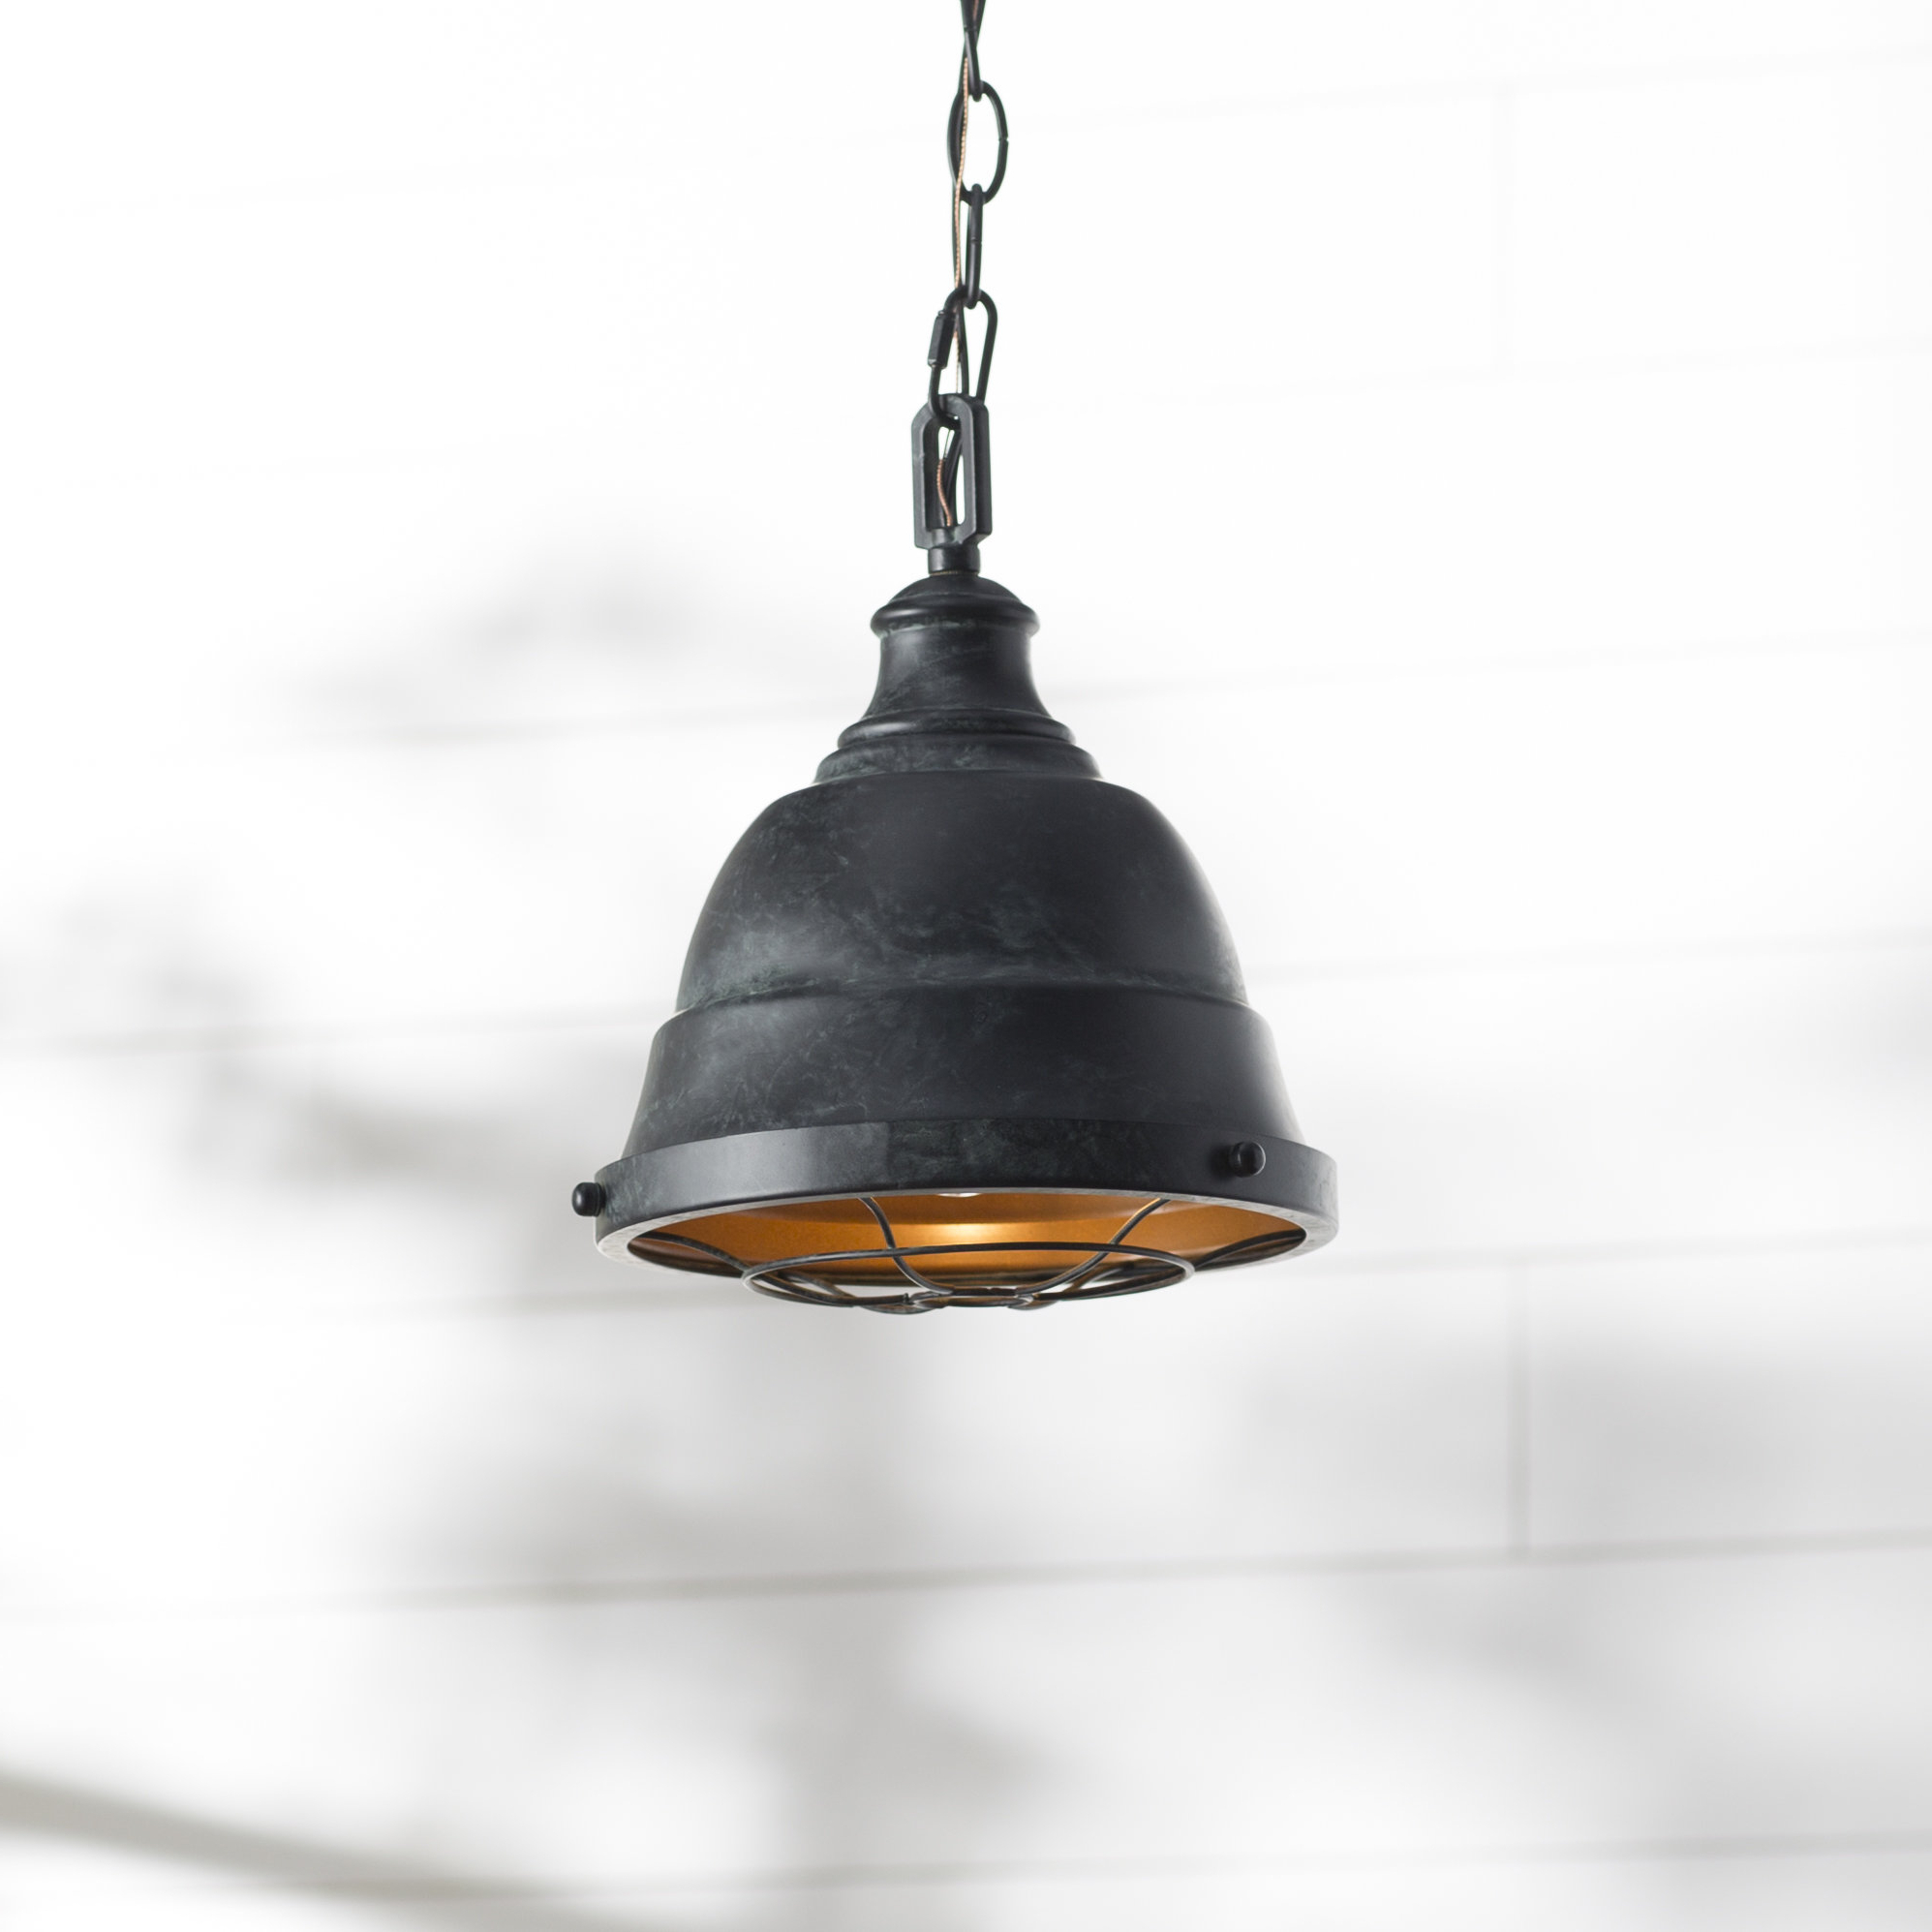 Elinna 1 Light Single Bell Pendant Throughout Well Known Bodalla 1 Light Single Bell Pendants (Gallery 19 of 20)